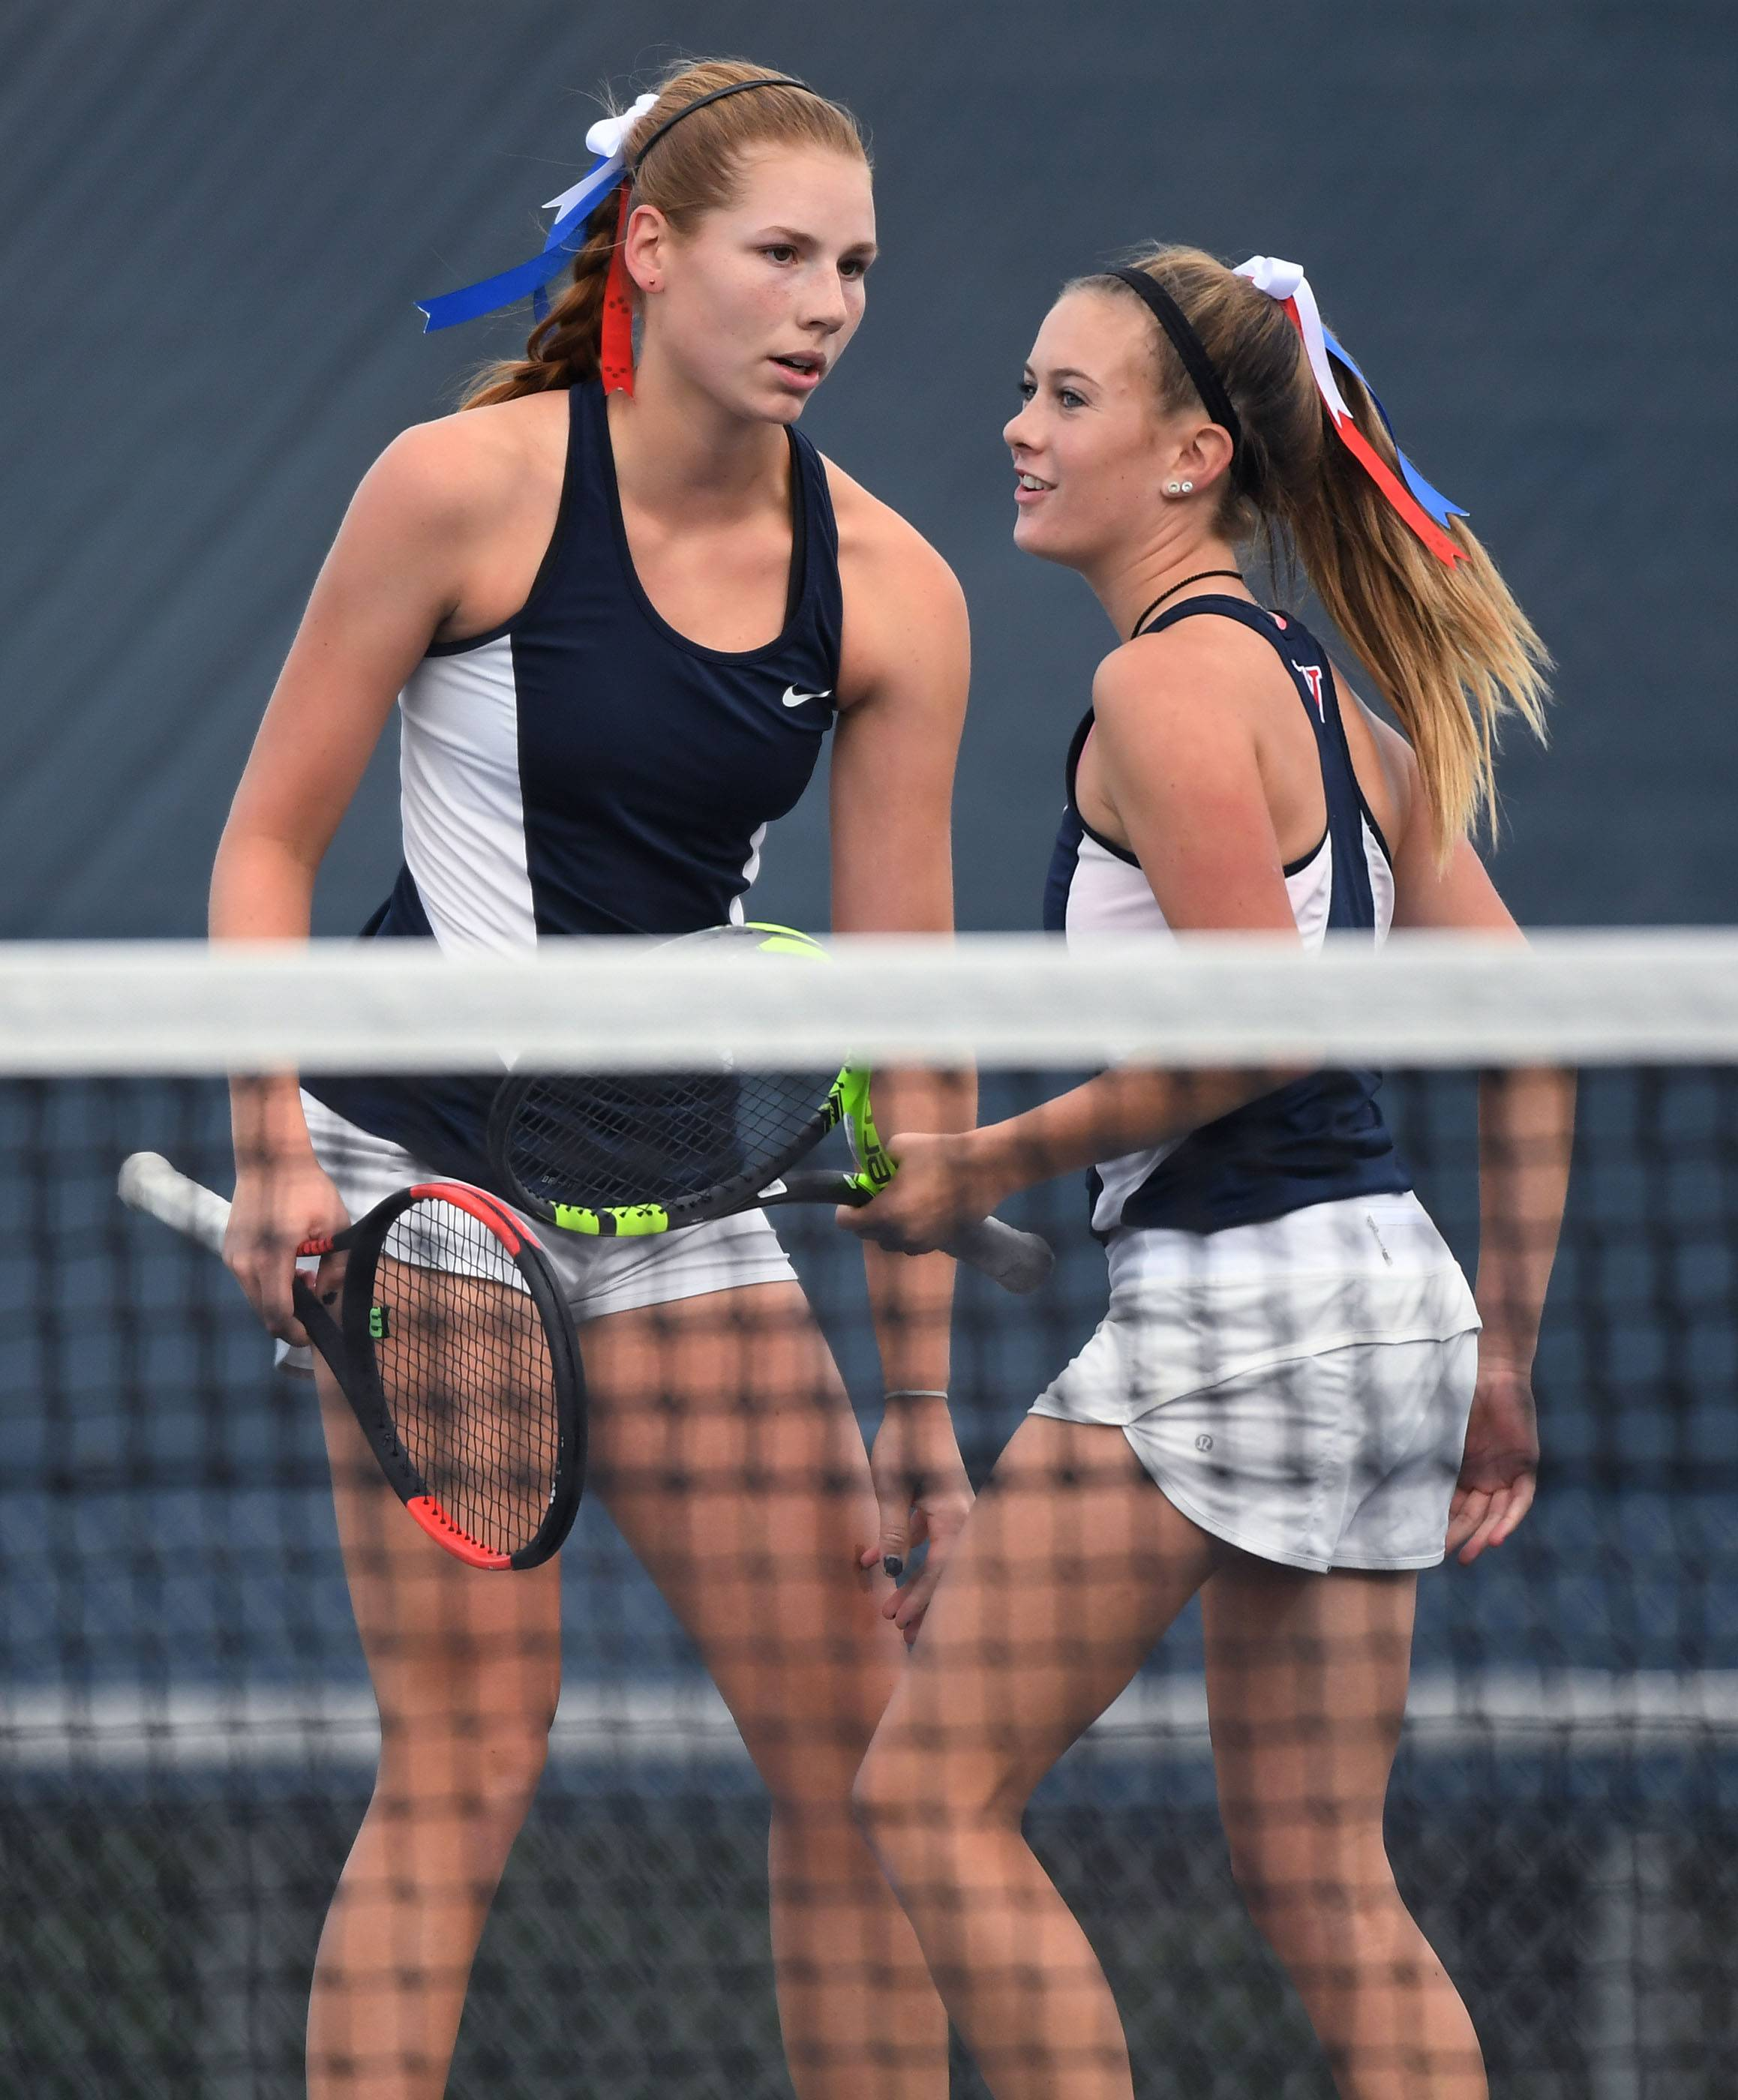 West Aurora's Maria Goheen, left, and Liz Stefancic strategize against Hinsdale Central's Sarah Dadawi and Kathryn Treiber in the Class 2A doubles semifinal match Saturday at the IHSA state finals at Buffalo Grove High School. Goheen and Stefancic went on to win the state title.